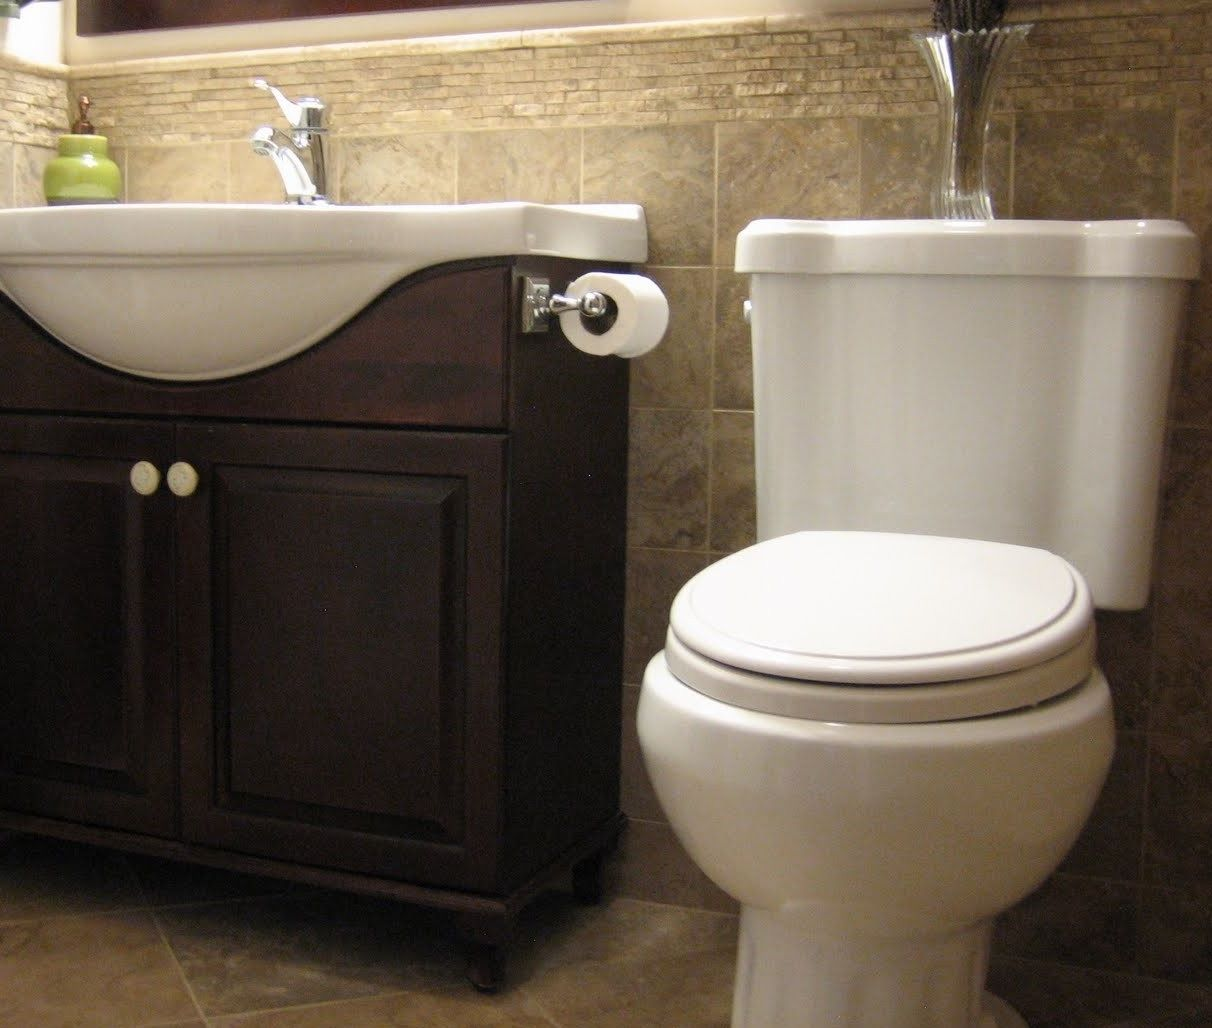 How Much Does It Cost To Install A Toilet?